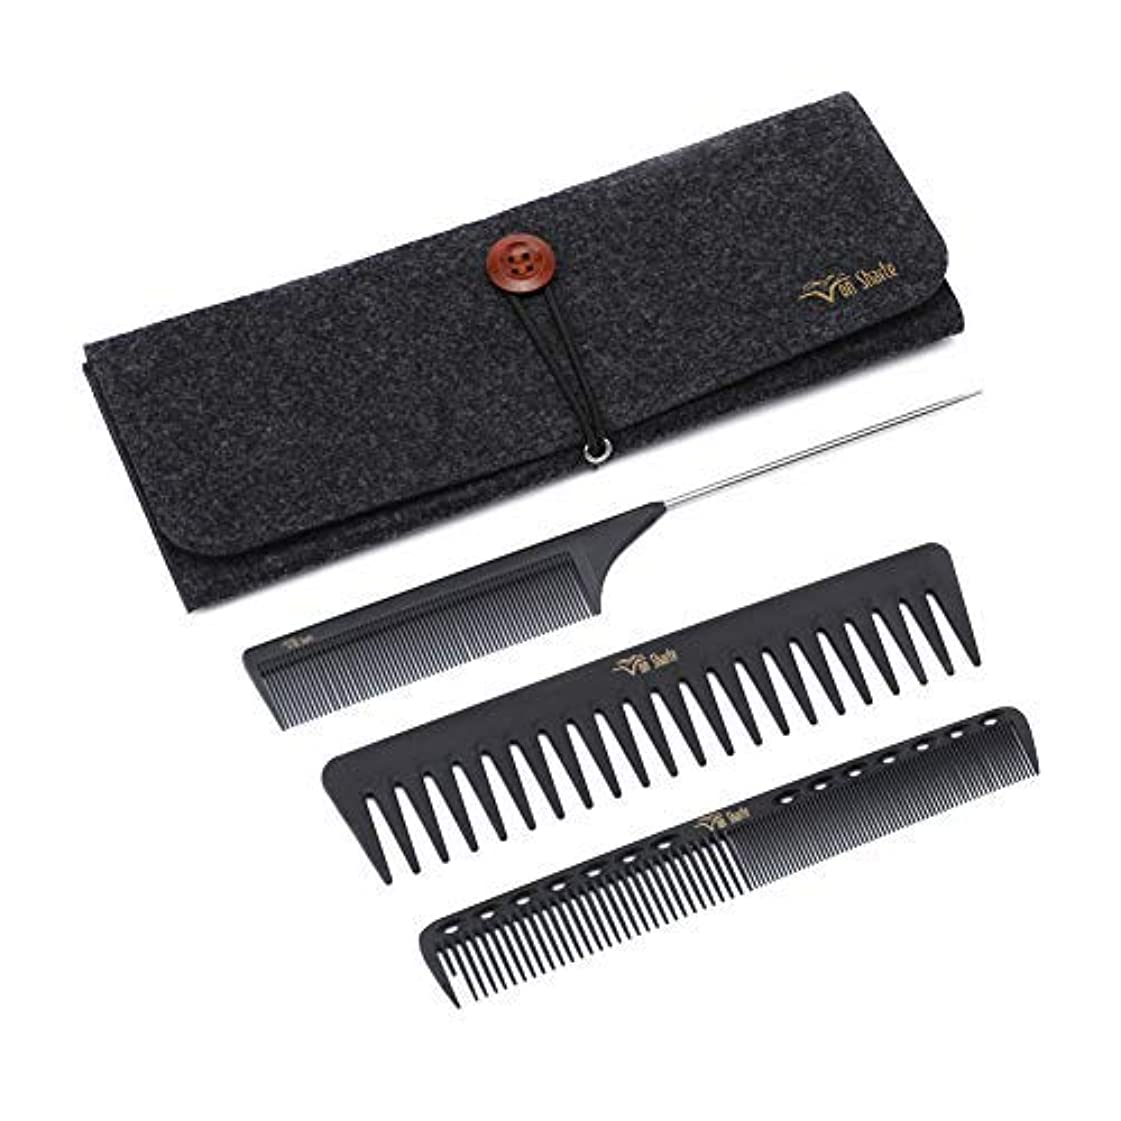 チャールズキージング輸血北東Styling Comb Set,Hairdresser Barber Comb Cutting Hair Comb Carbon Fiber Wide Tooth Comb Metal Rat Pin Tail Comb...